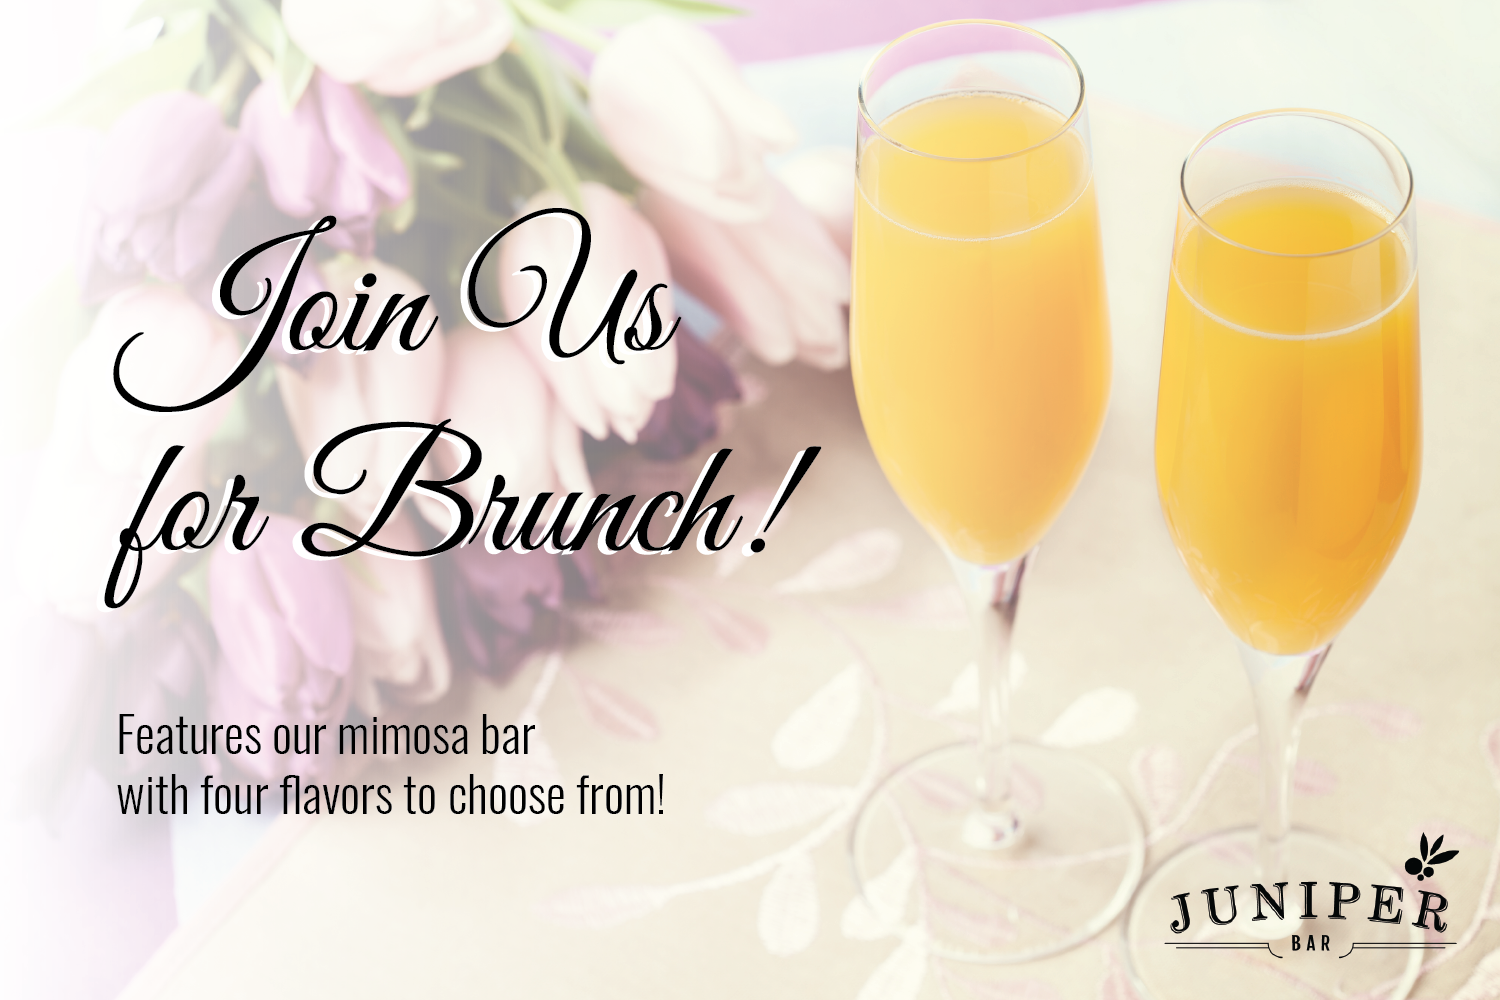 Juniper is inviting you to join them for brunch